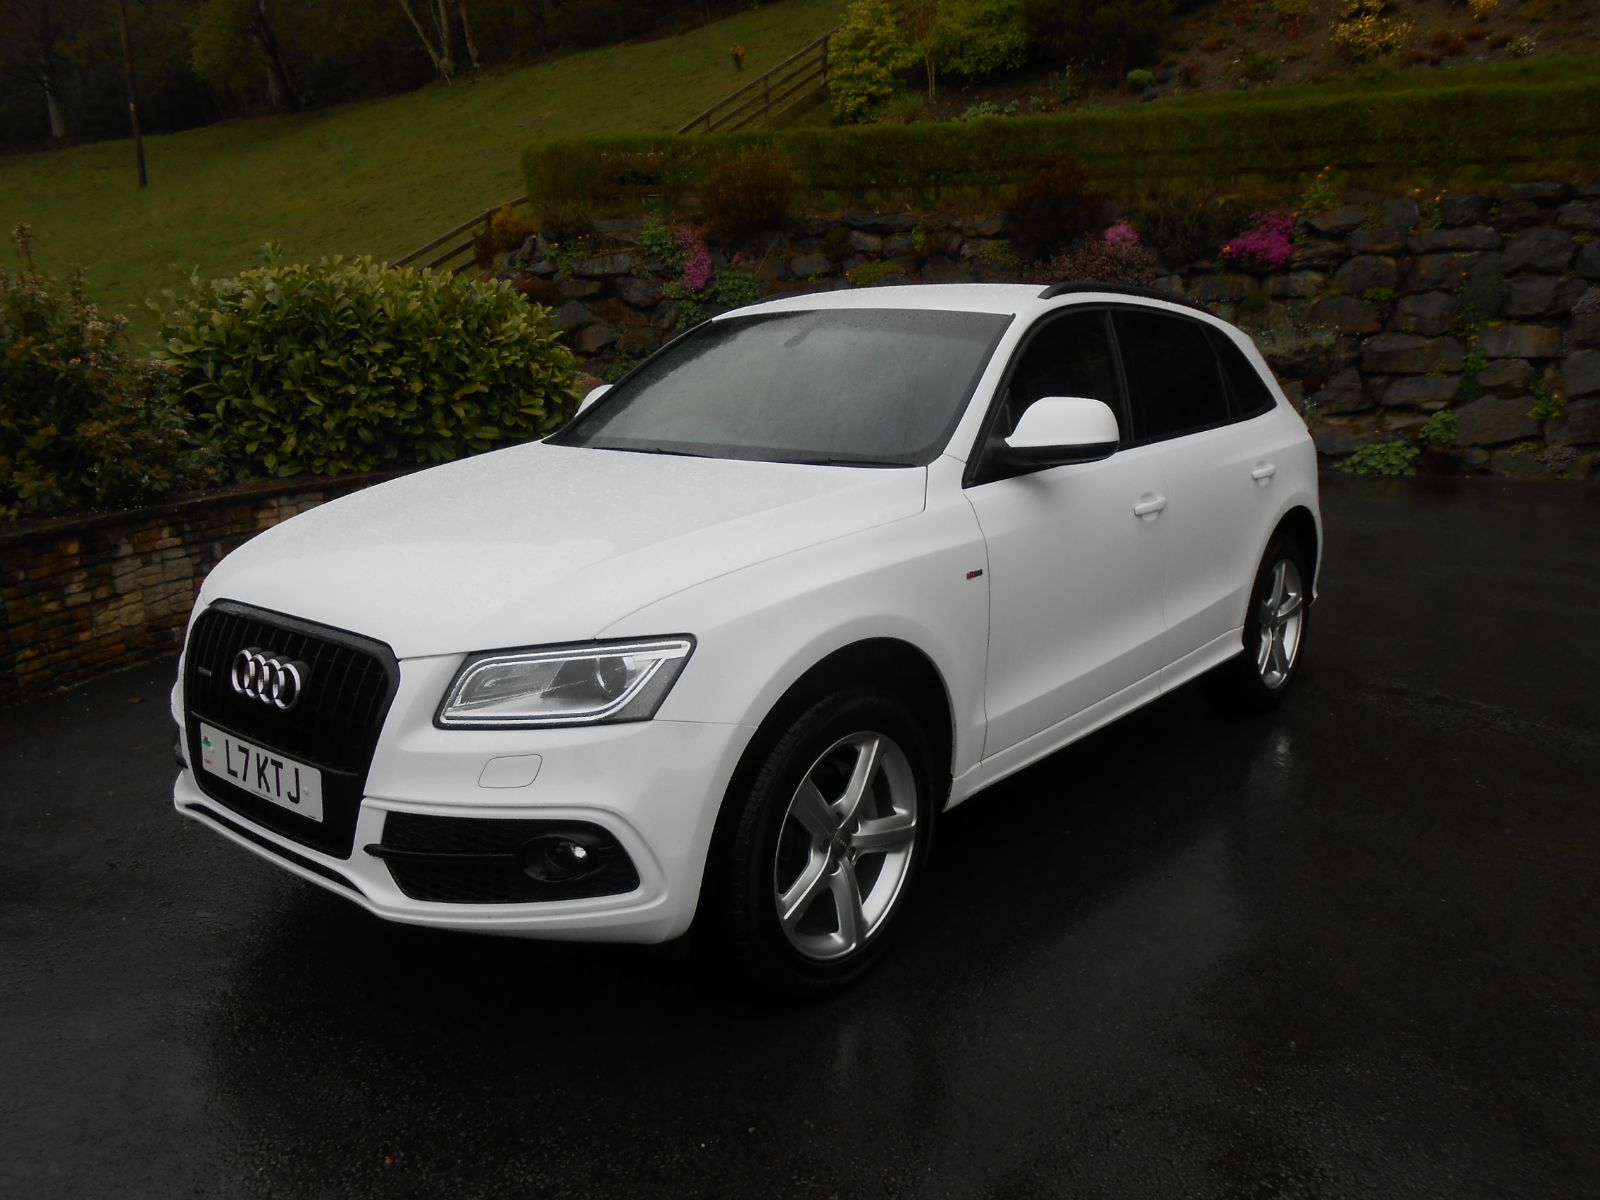 Audi Q5 2.0 TDi 177 S-Line car for sale Llanidloes Powys Mid Wales Kevin Jones Cars - Used cars ...